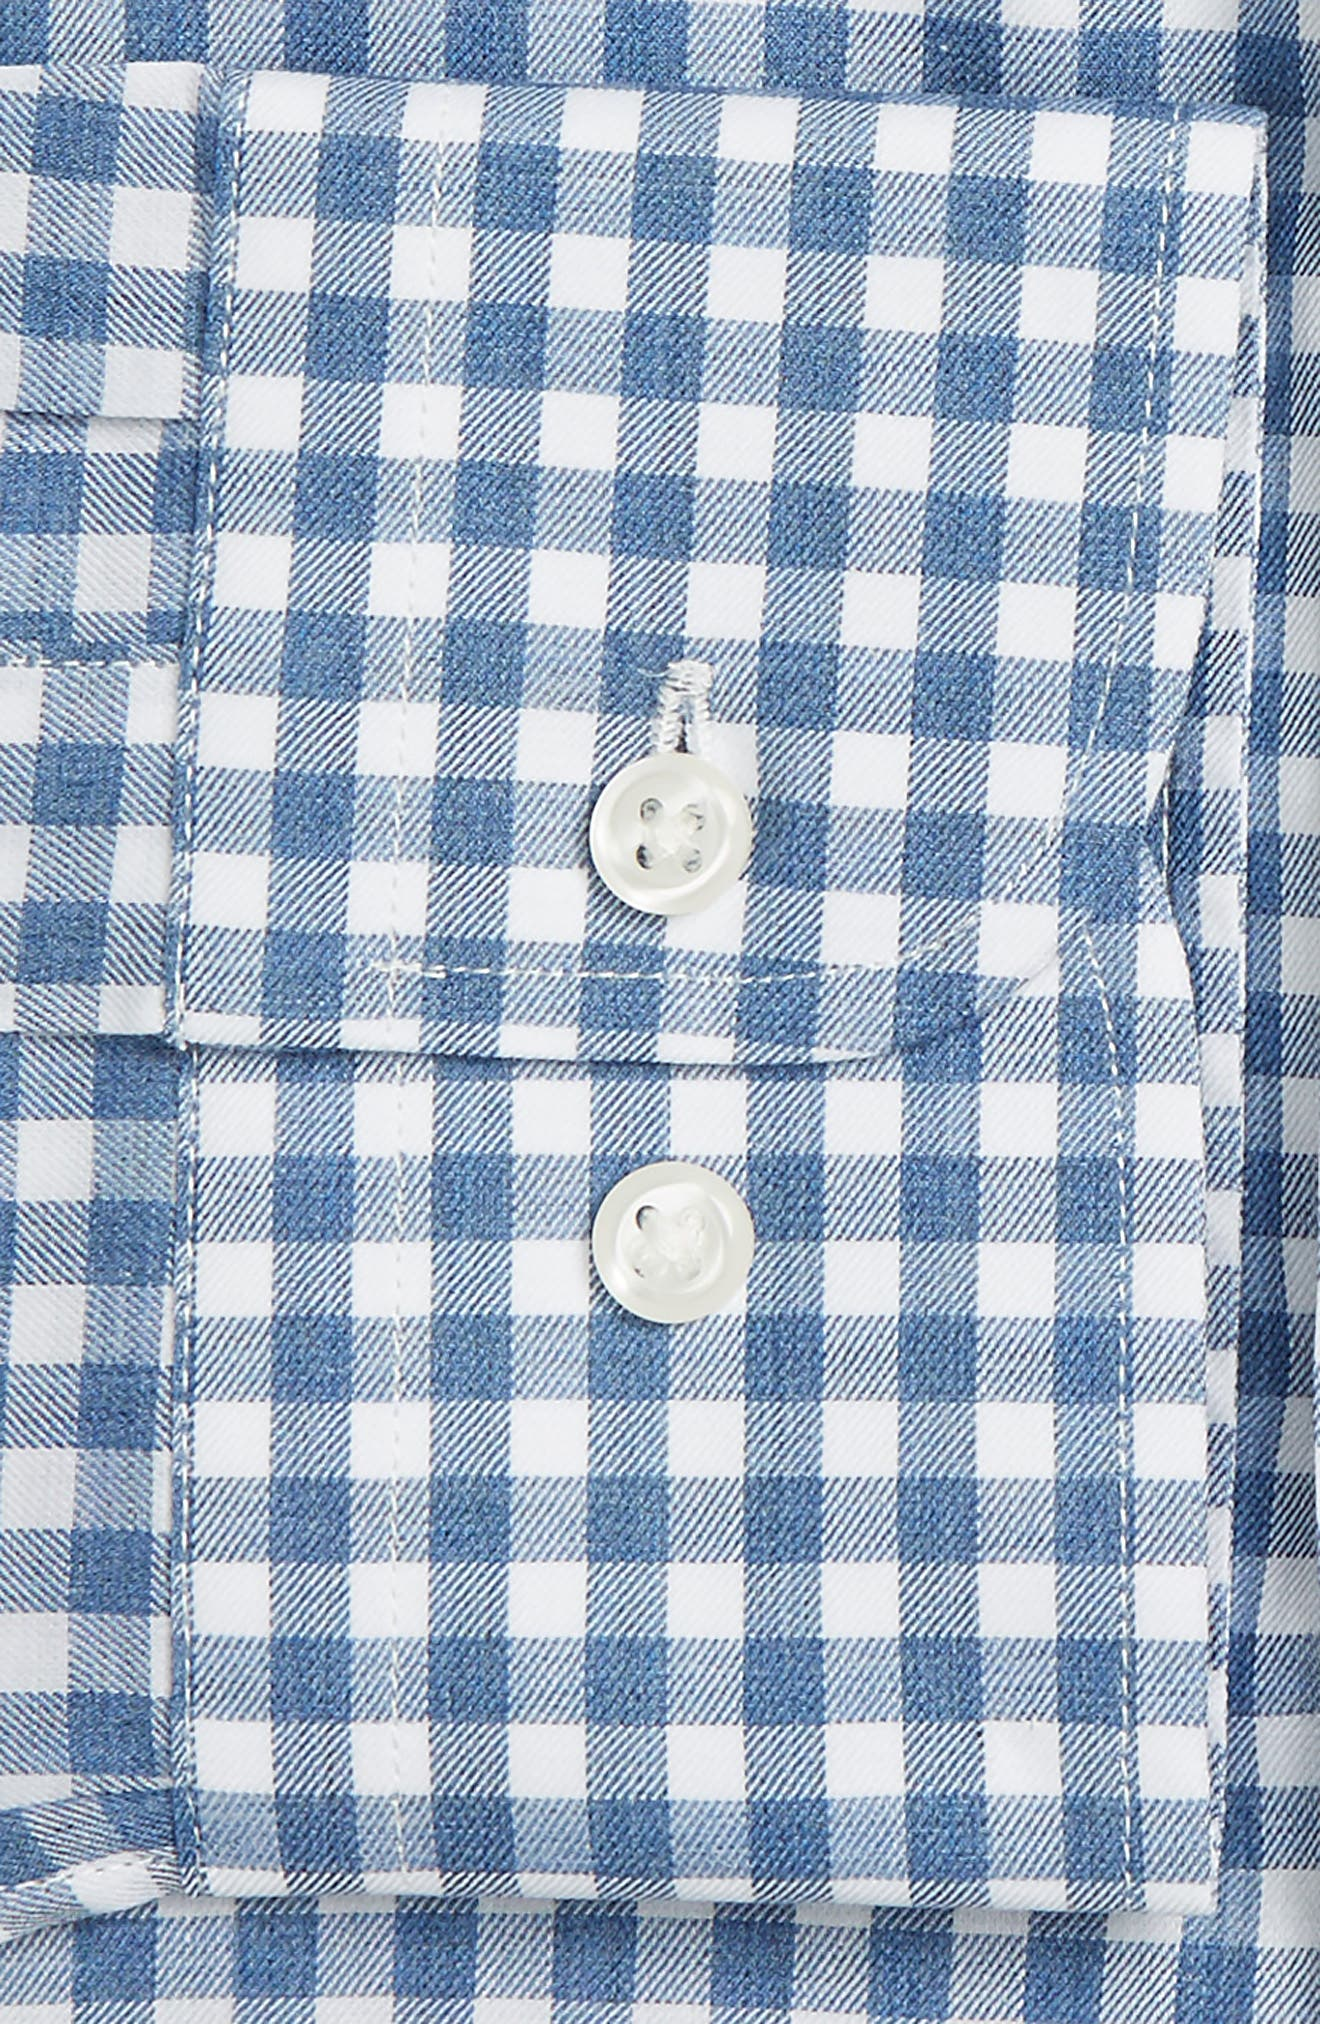 Alternate Image 2  - Nordstrom Men's Shop Trim Fit Check Dress Shirt